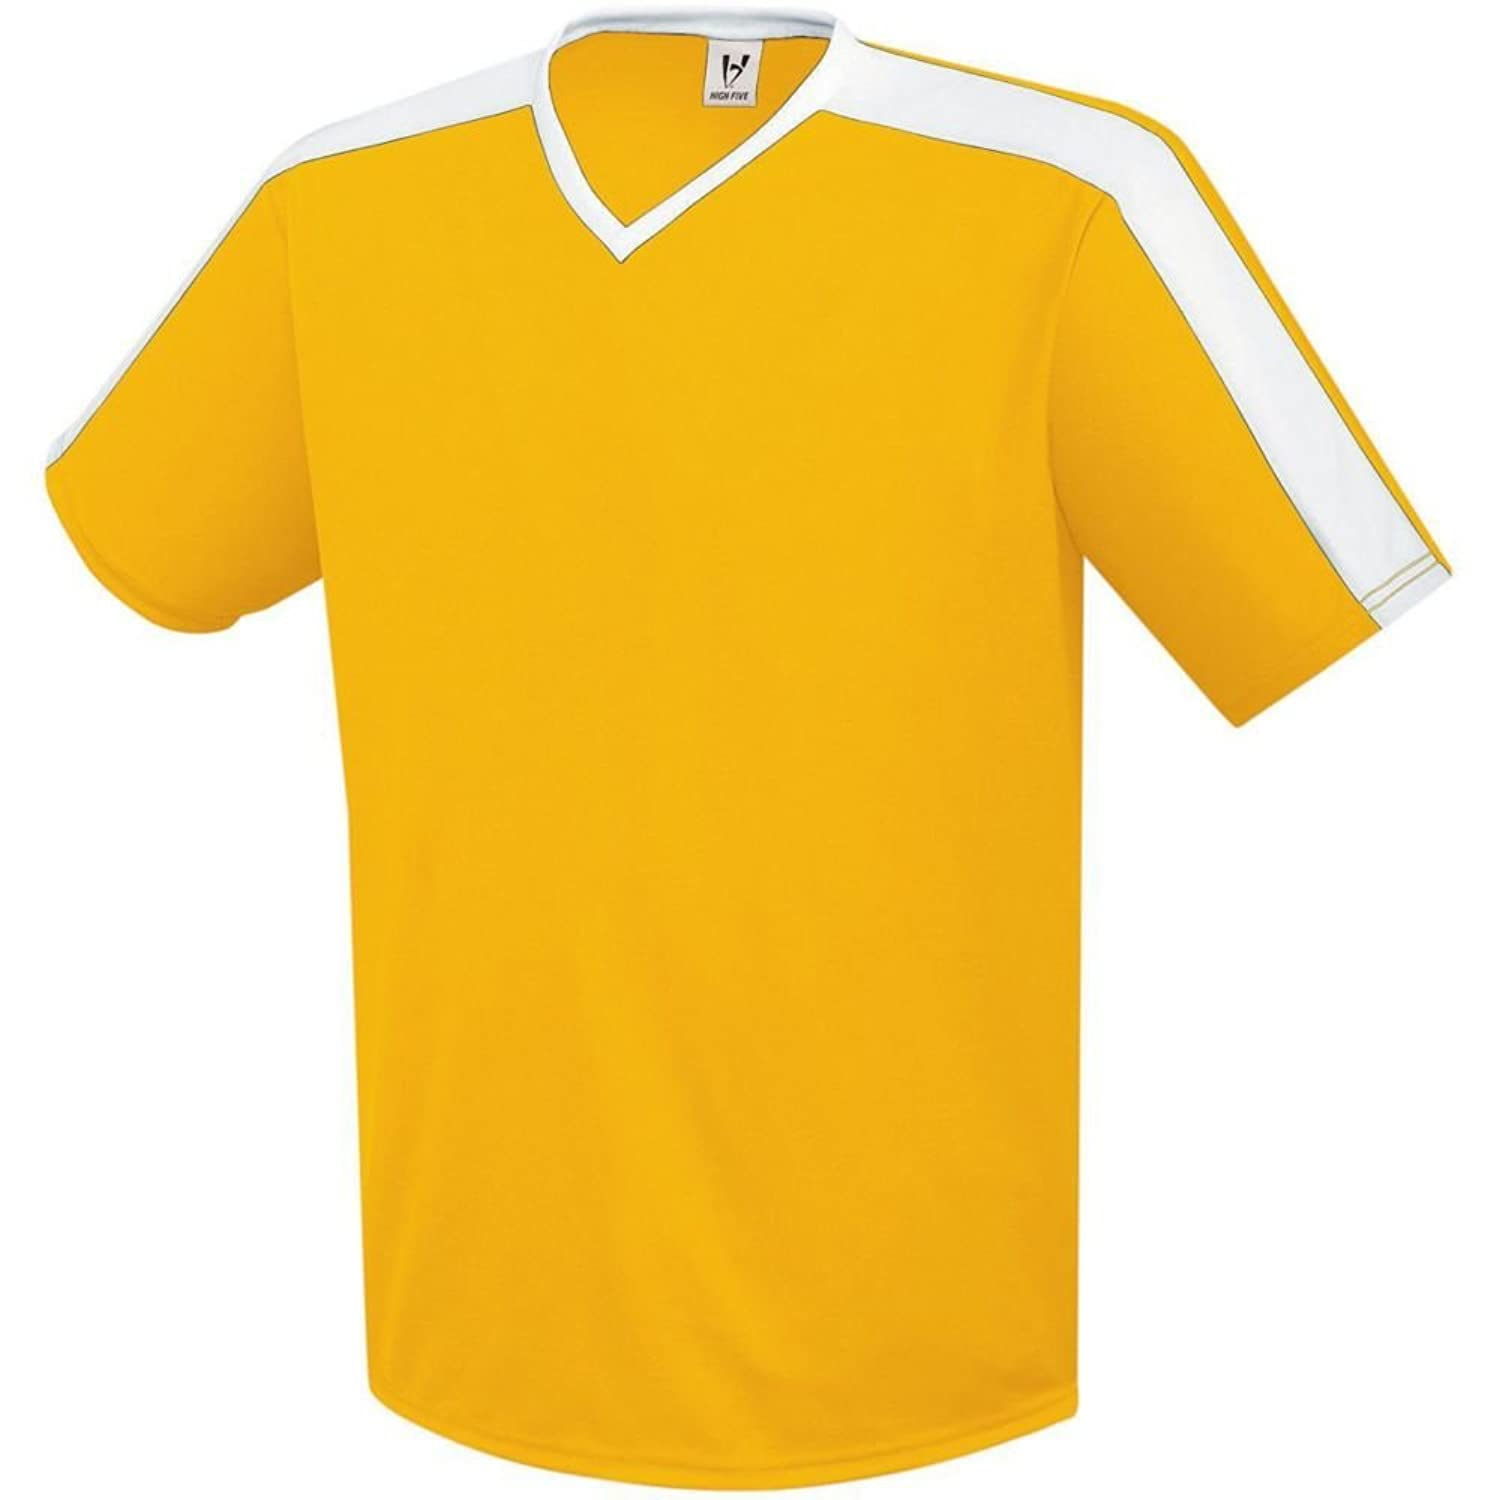 High Five Sportswear SHIRT ボーイズ B07CF7JX76Athletic Gold/White Small